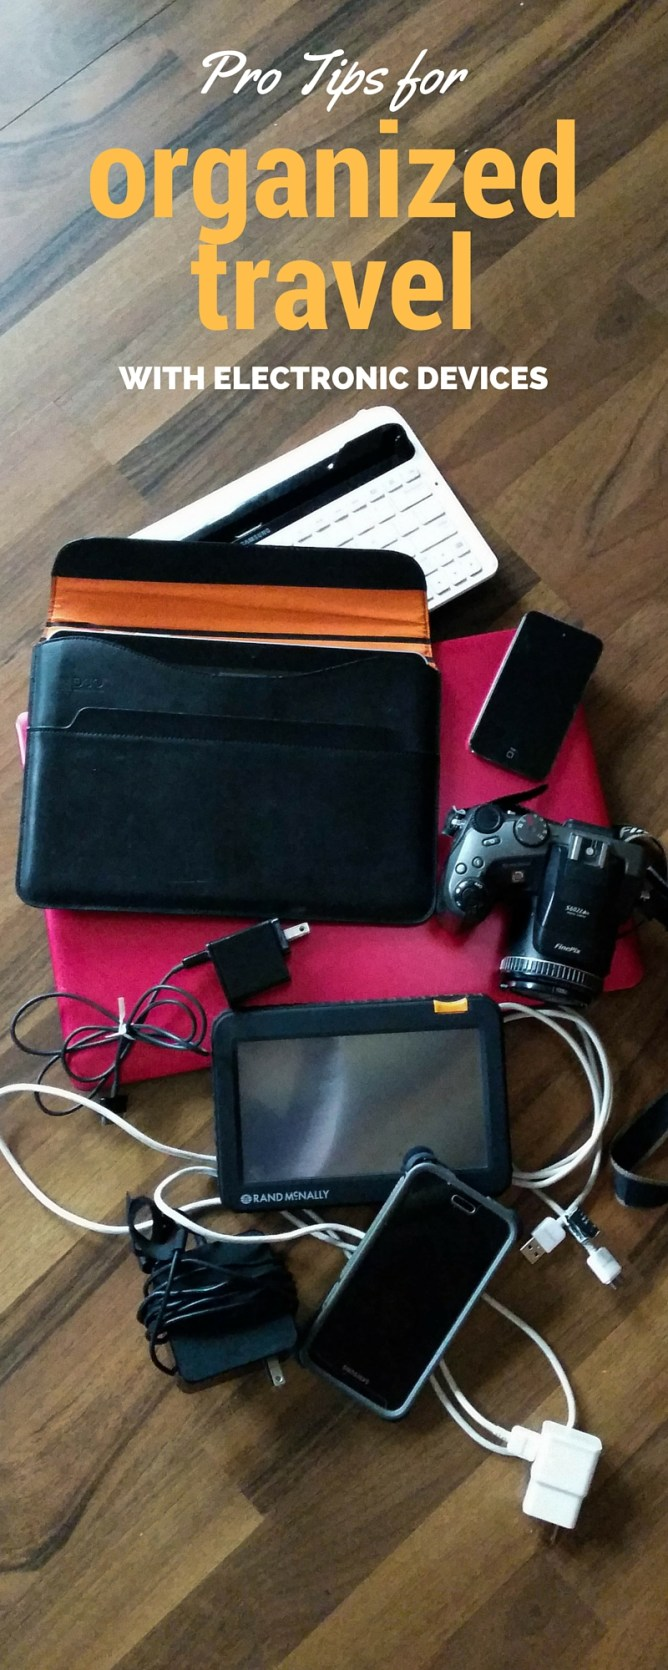 Pro Tips for Organized Travel with Electronic Devices at I'm an Organizing Junkie blog